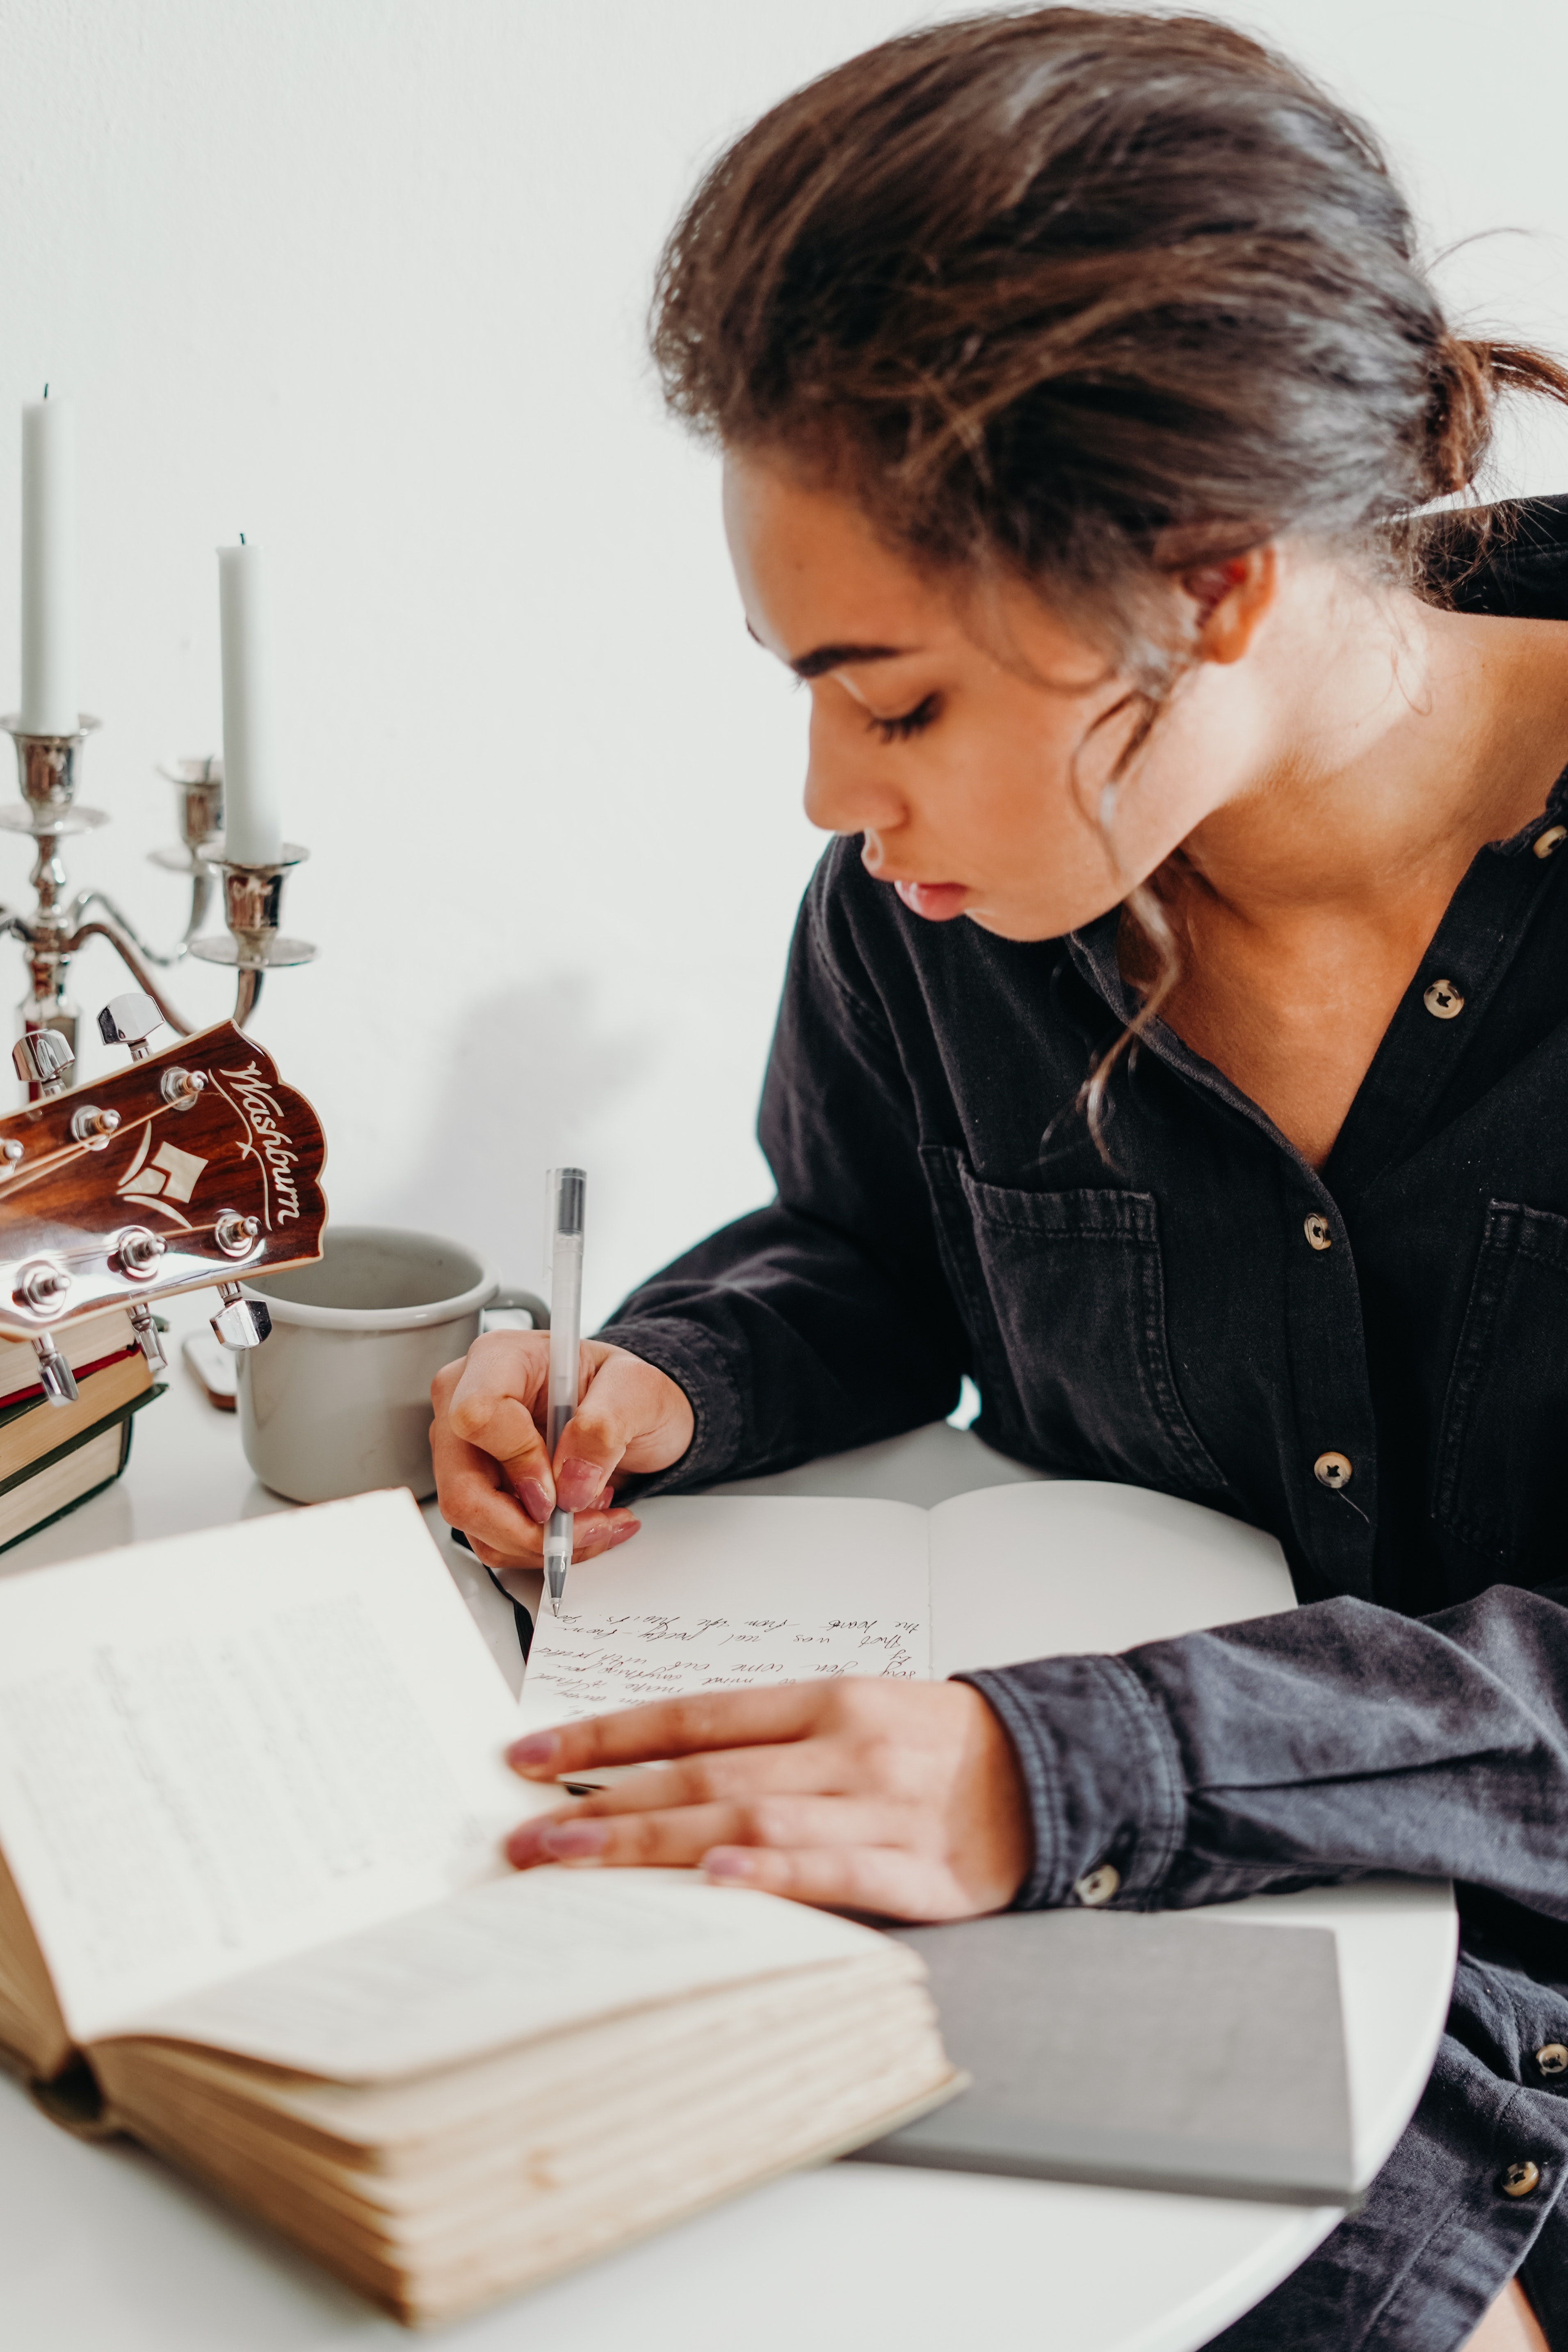 Woman taking notes on a book